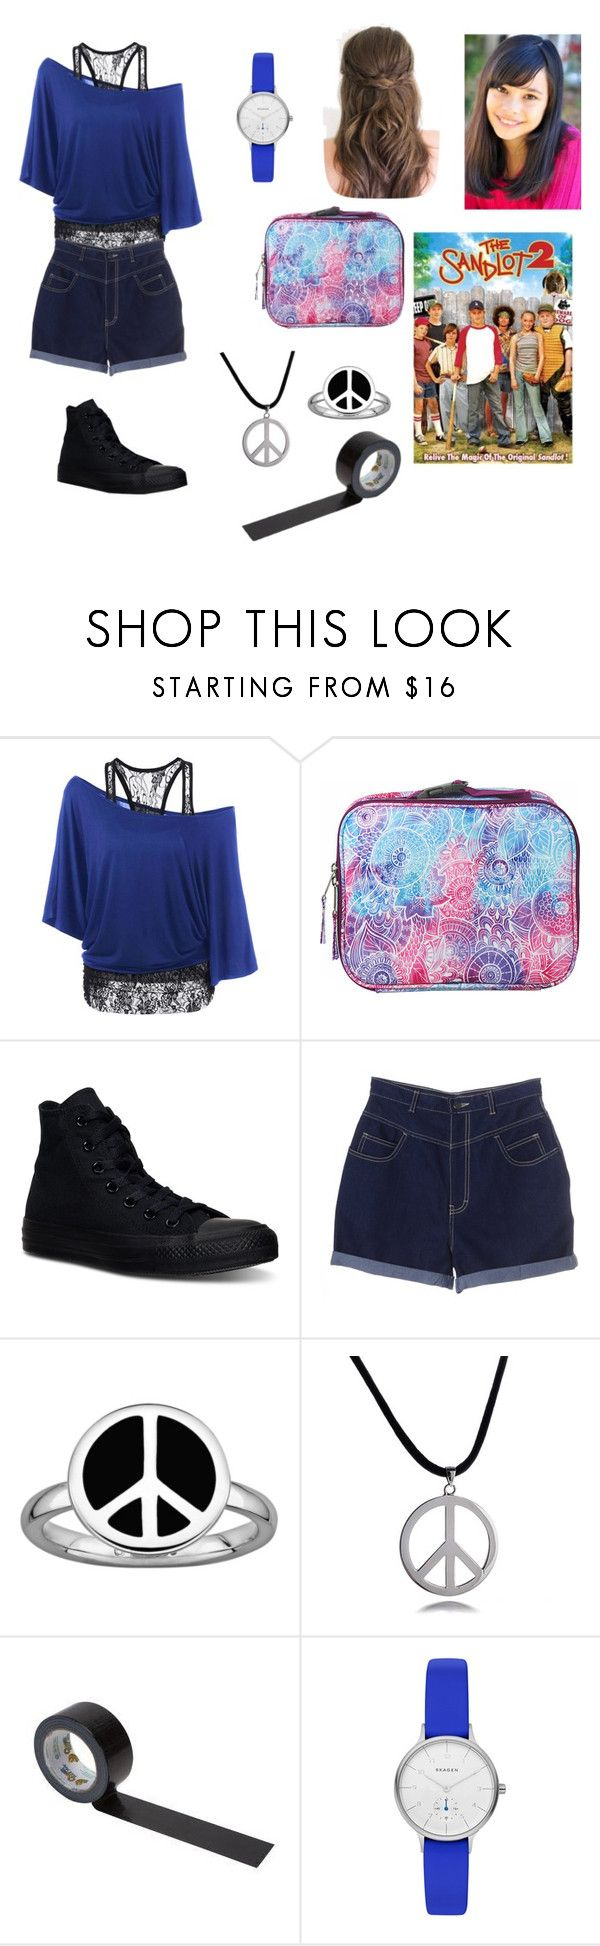 """Entering the sandlot-The Sandlot 2 OC (Read D!)"" by silverbellatrix ❤ liked on Polyvore featuring Dickies, Converse, Stacks and Stones, Bling Jewelry and Skagen"